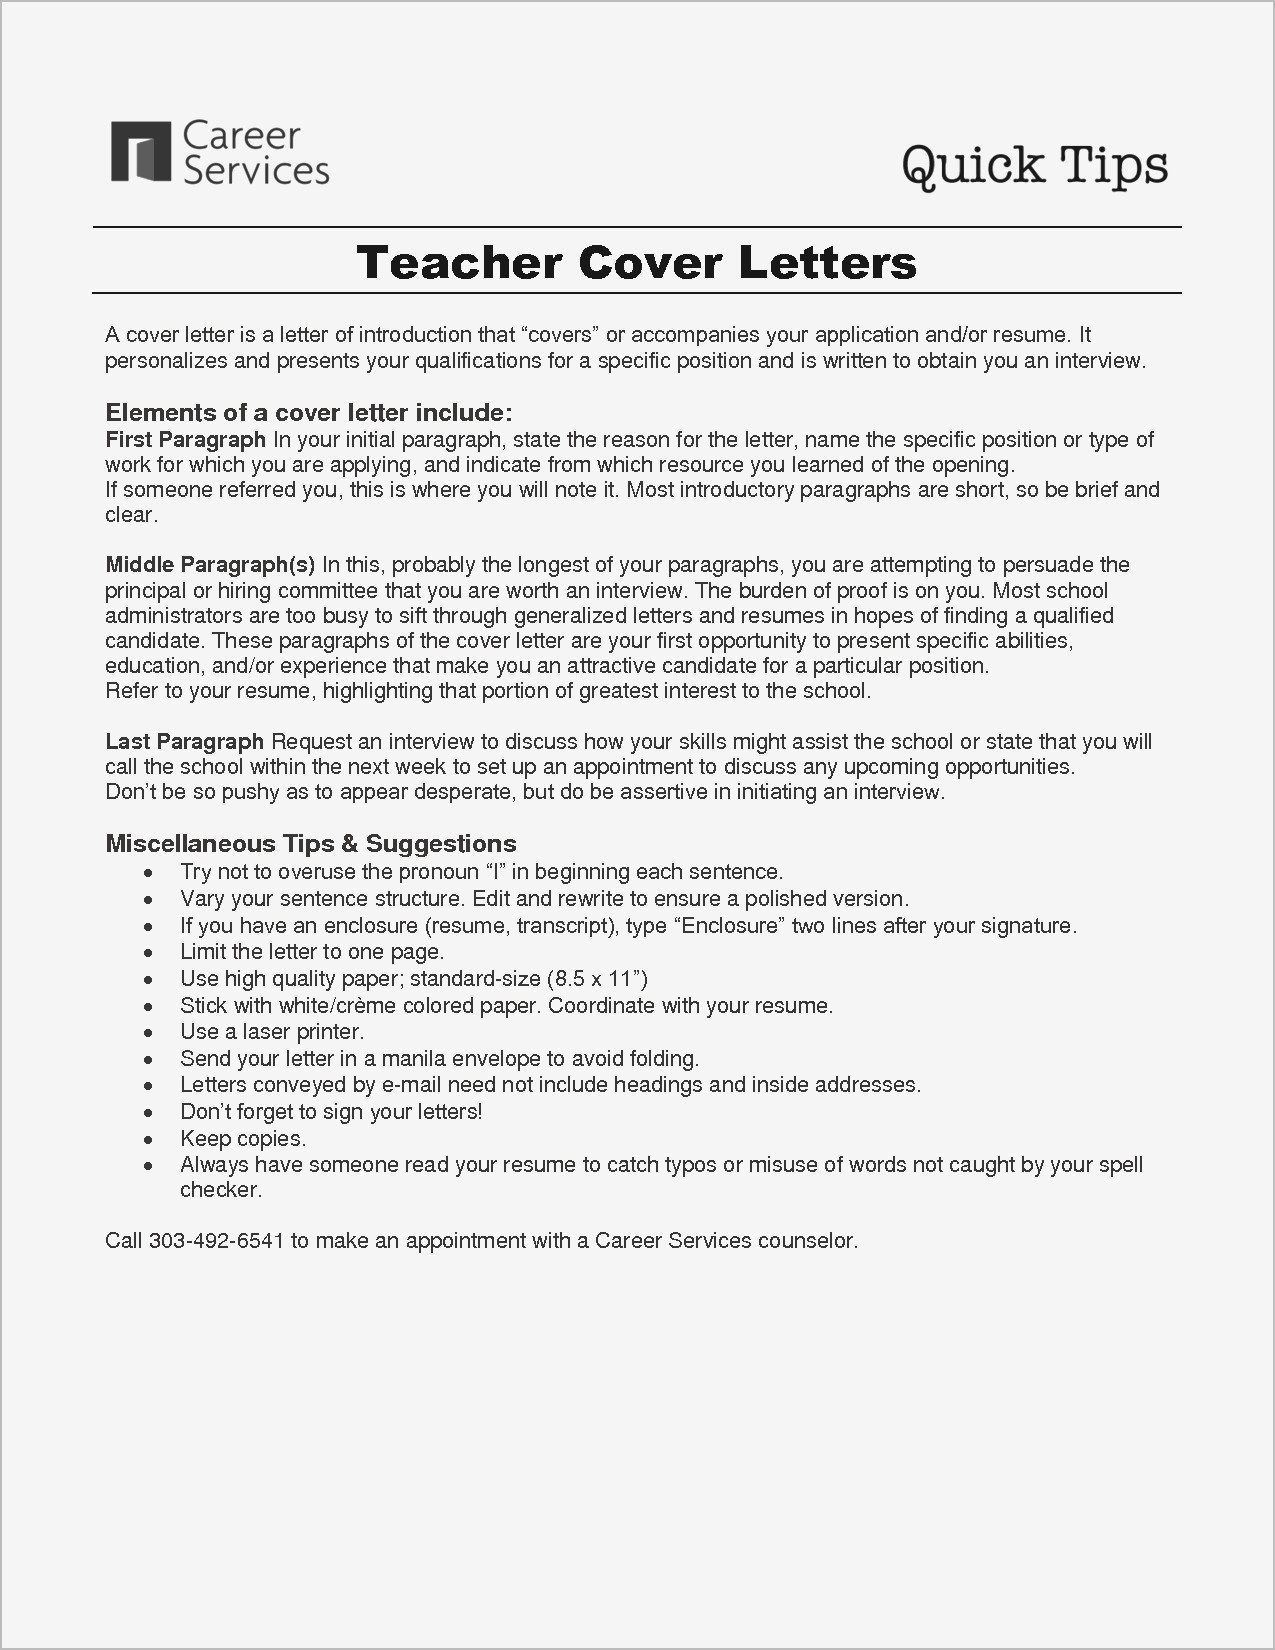 Jimmy Sweeney Cover Letter Template - Amazing Cover Letters Pdf format